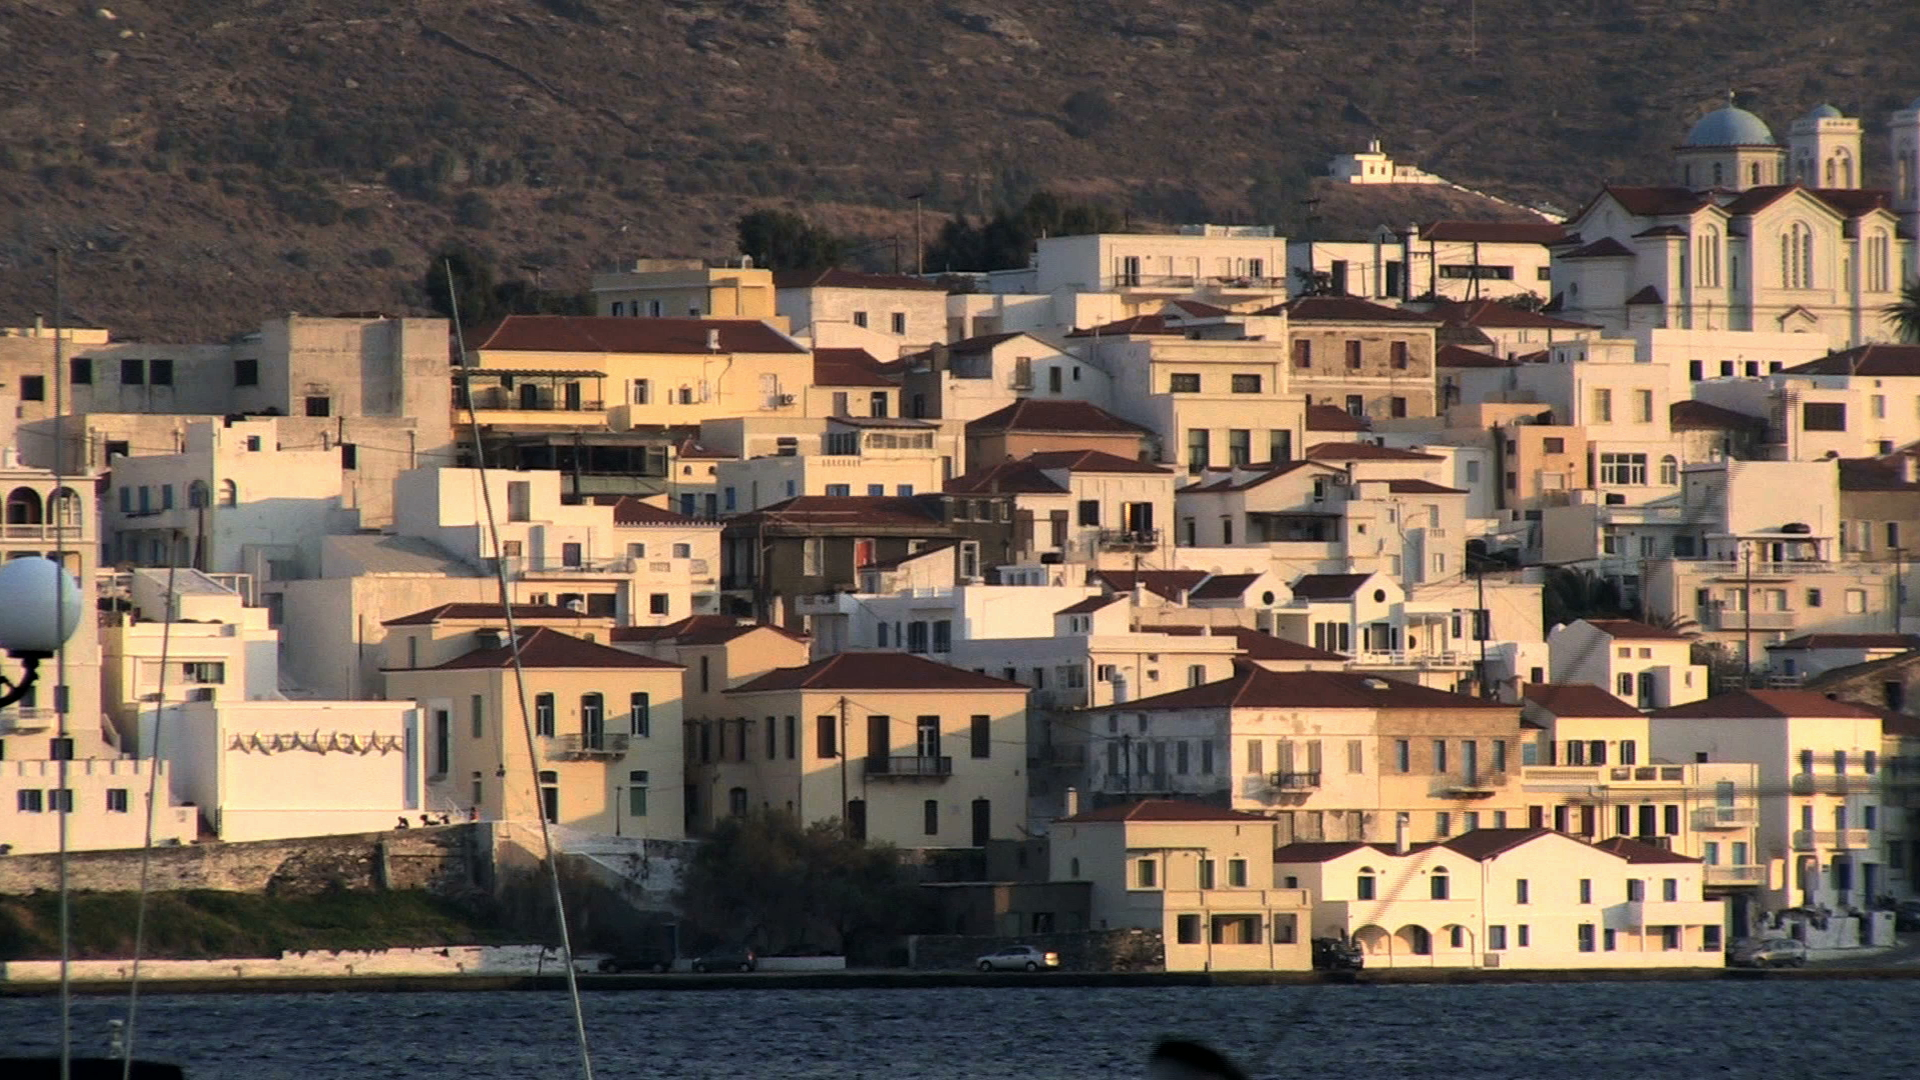 About Andros town (Chora of Andros)